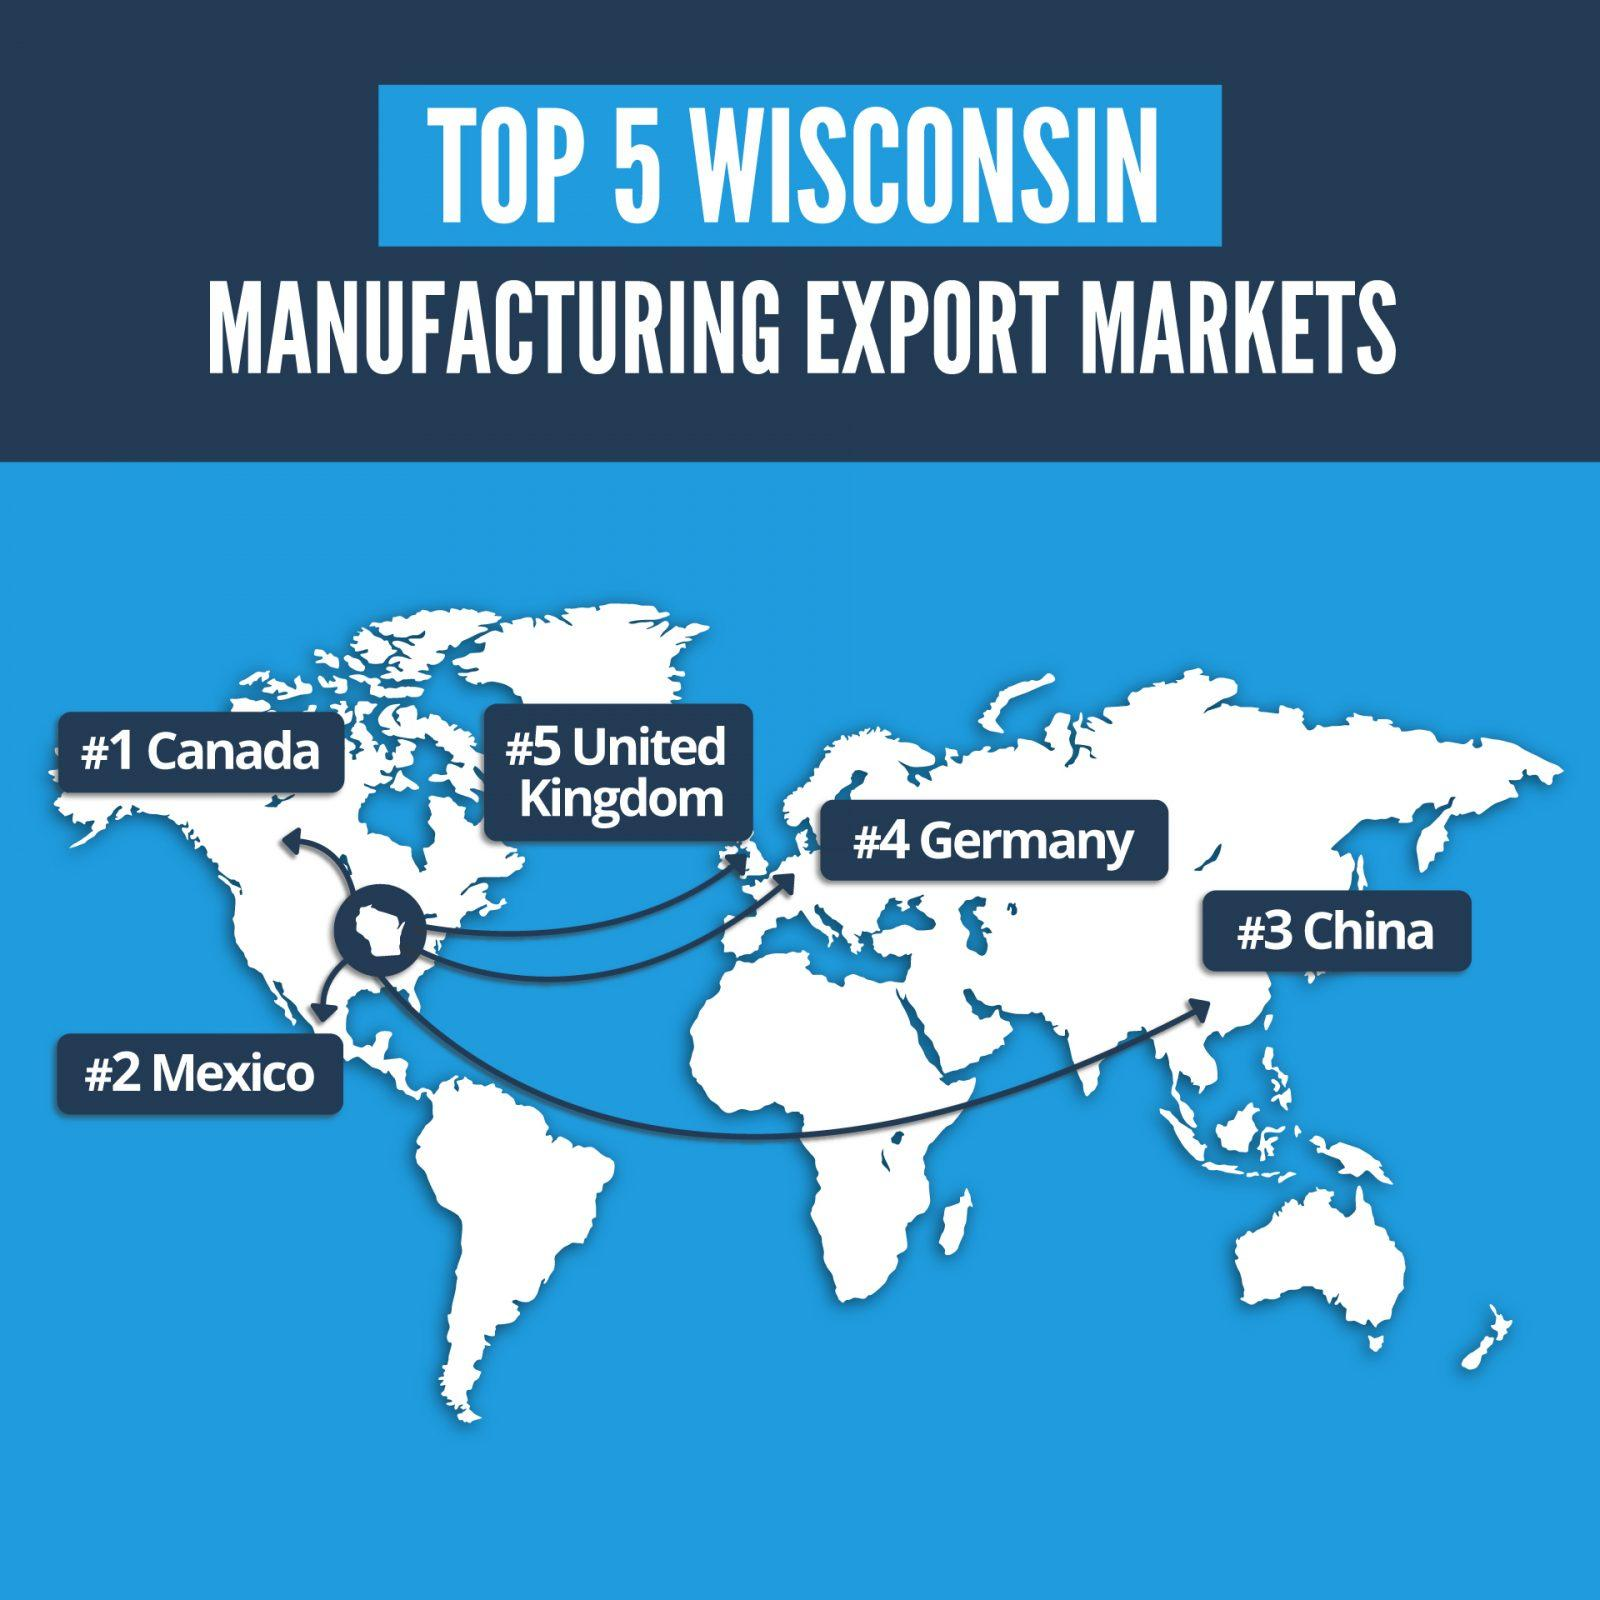 map showing wisconsin manufacturing export markets